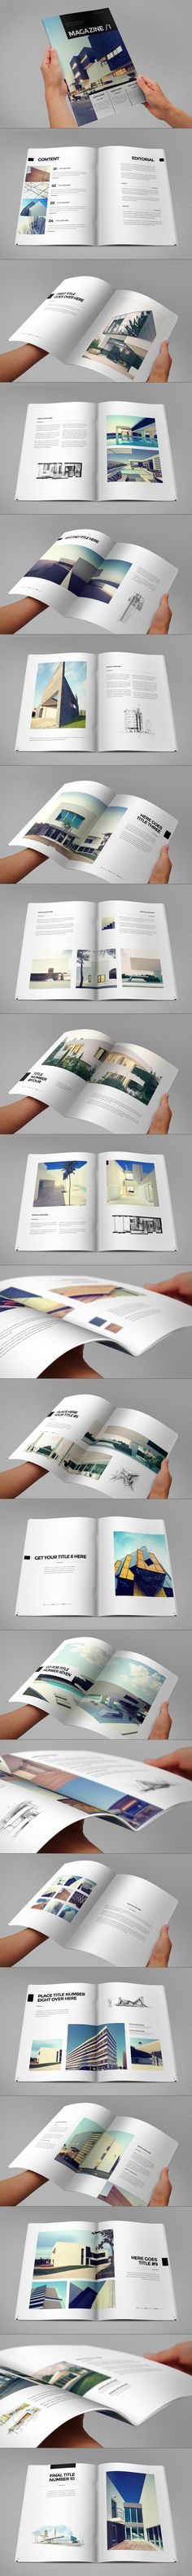 Architecture Minimal Magazine by Abra Design, via Behance